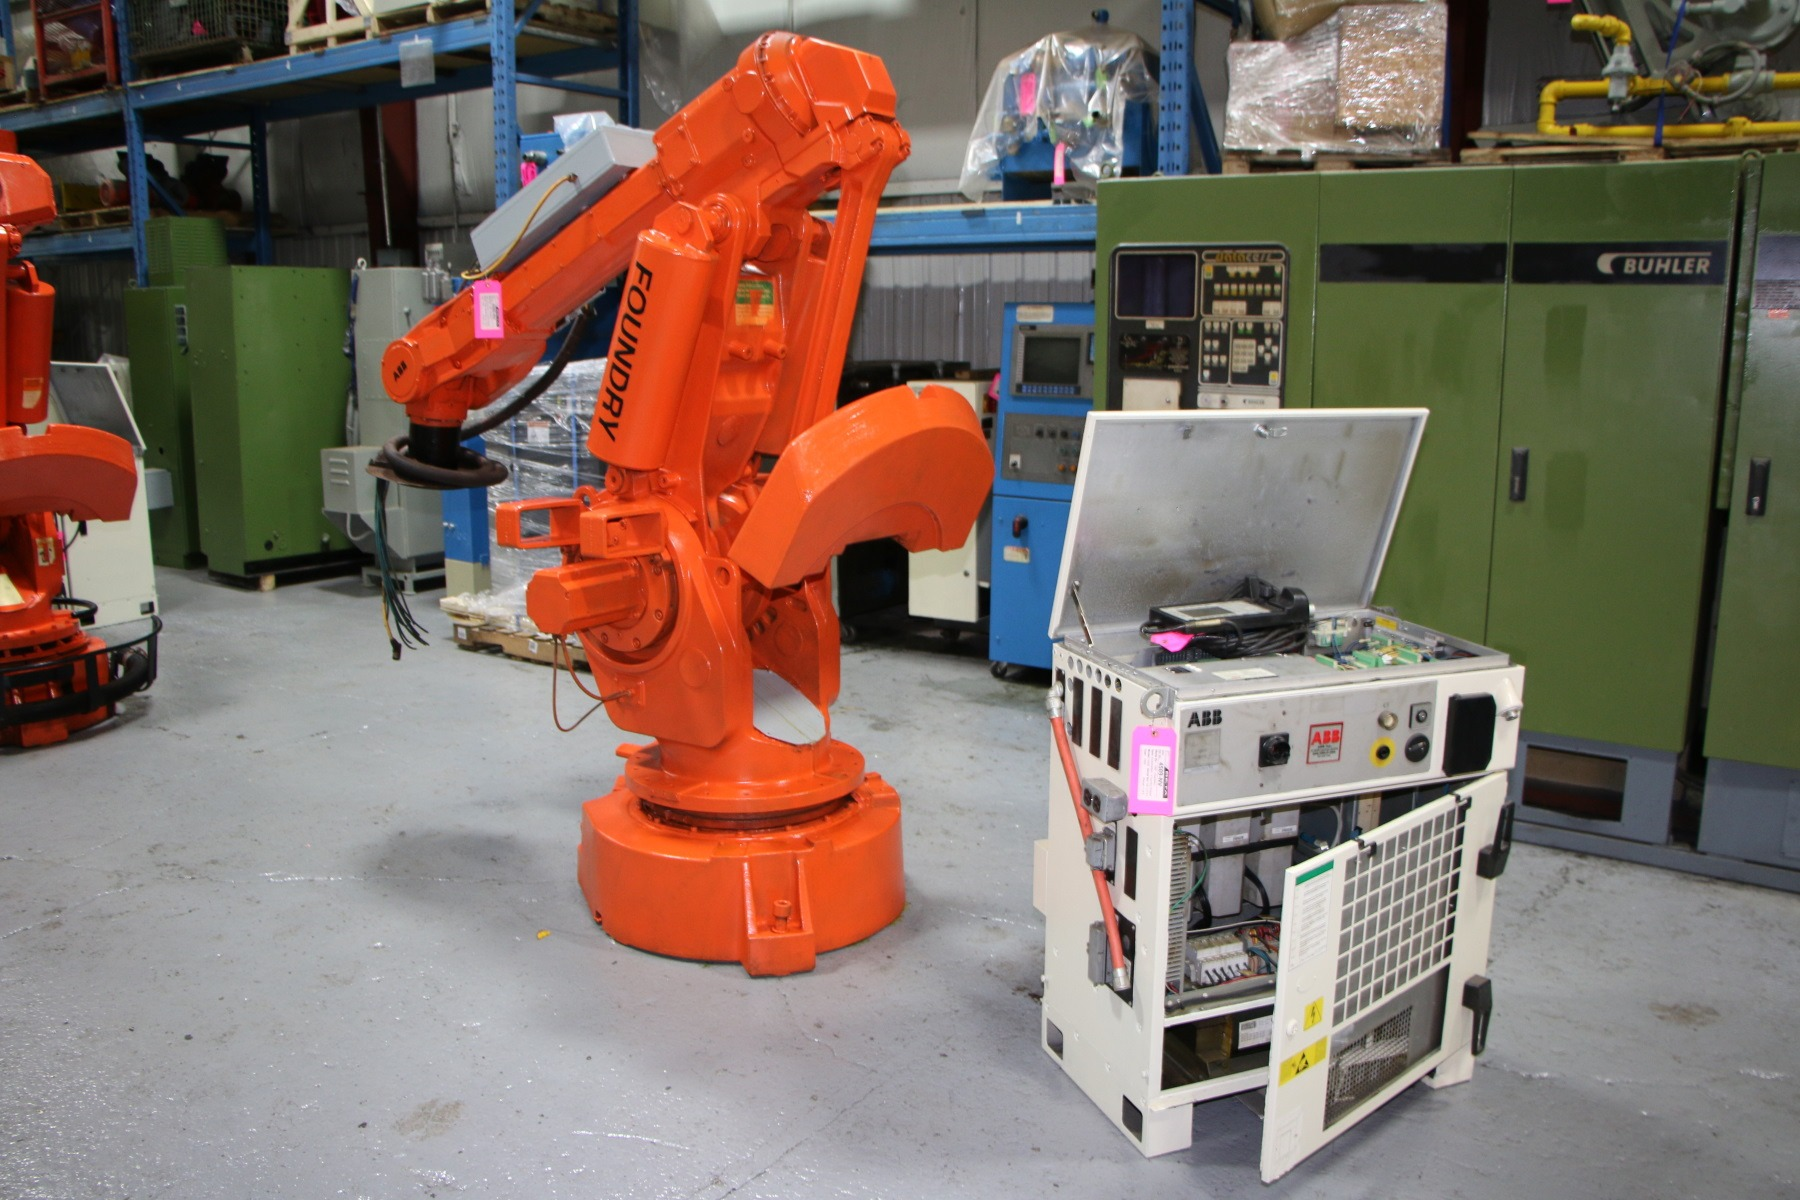 Used ABB 6400 Foundry Plus Robot #4509